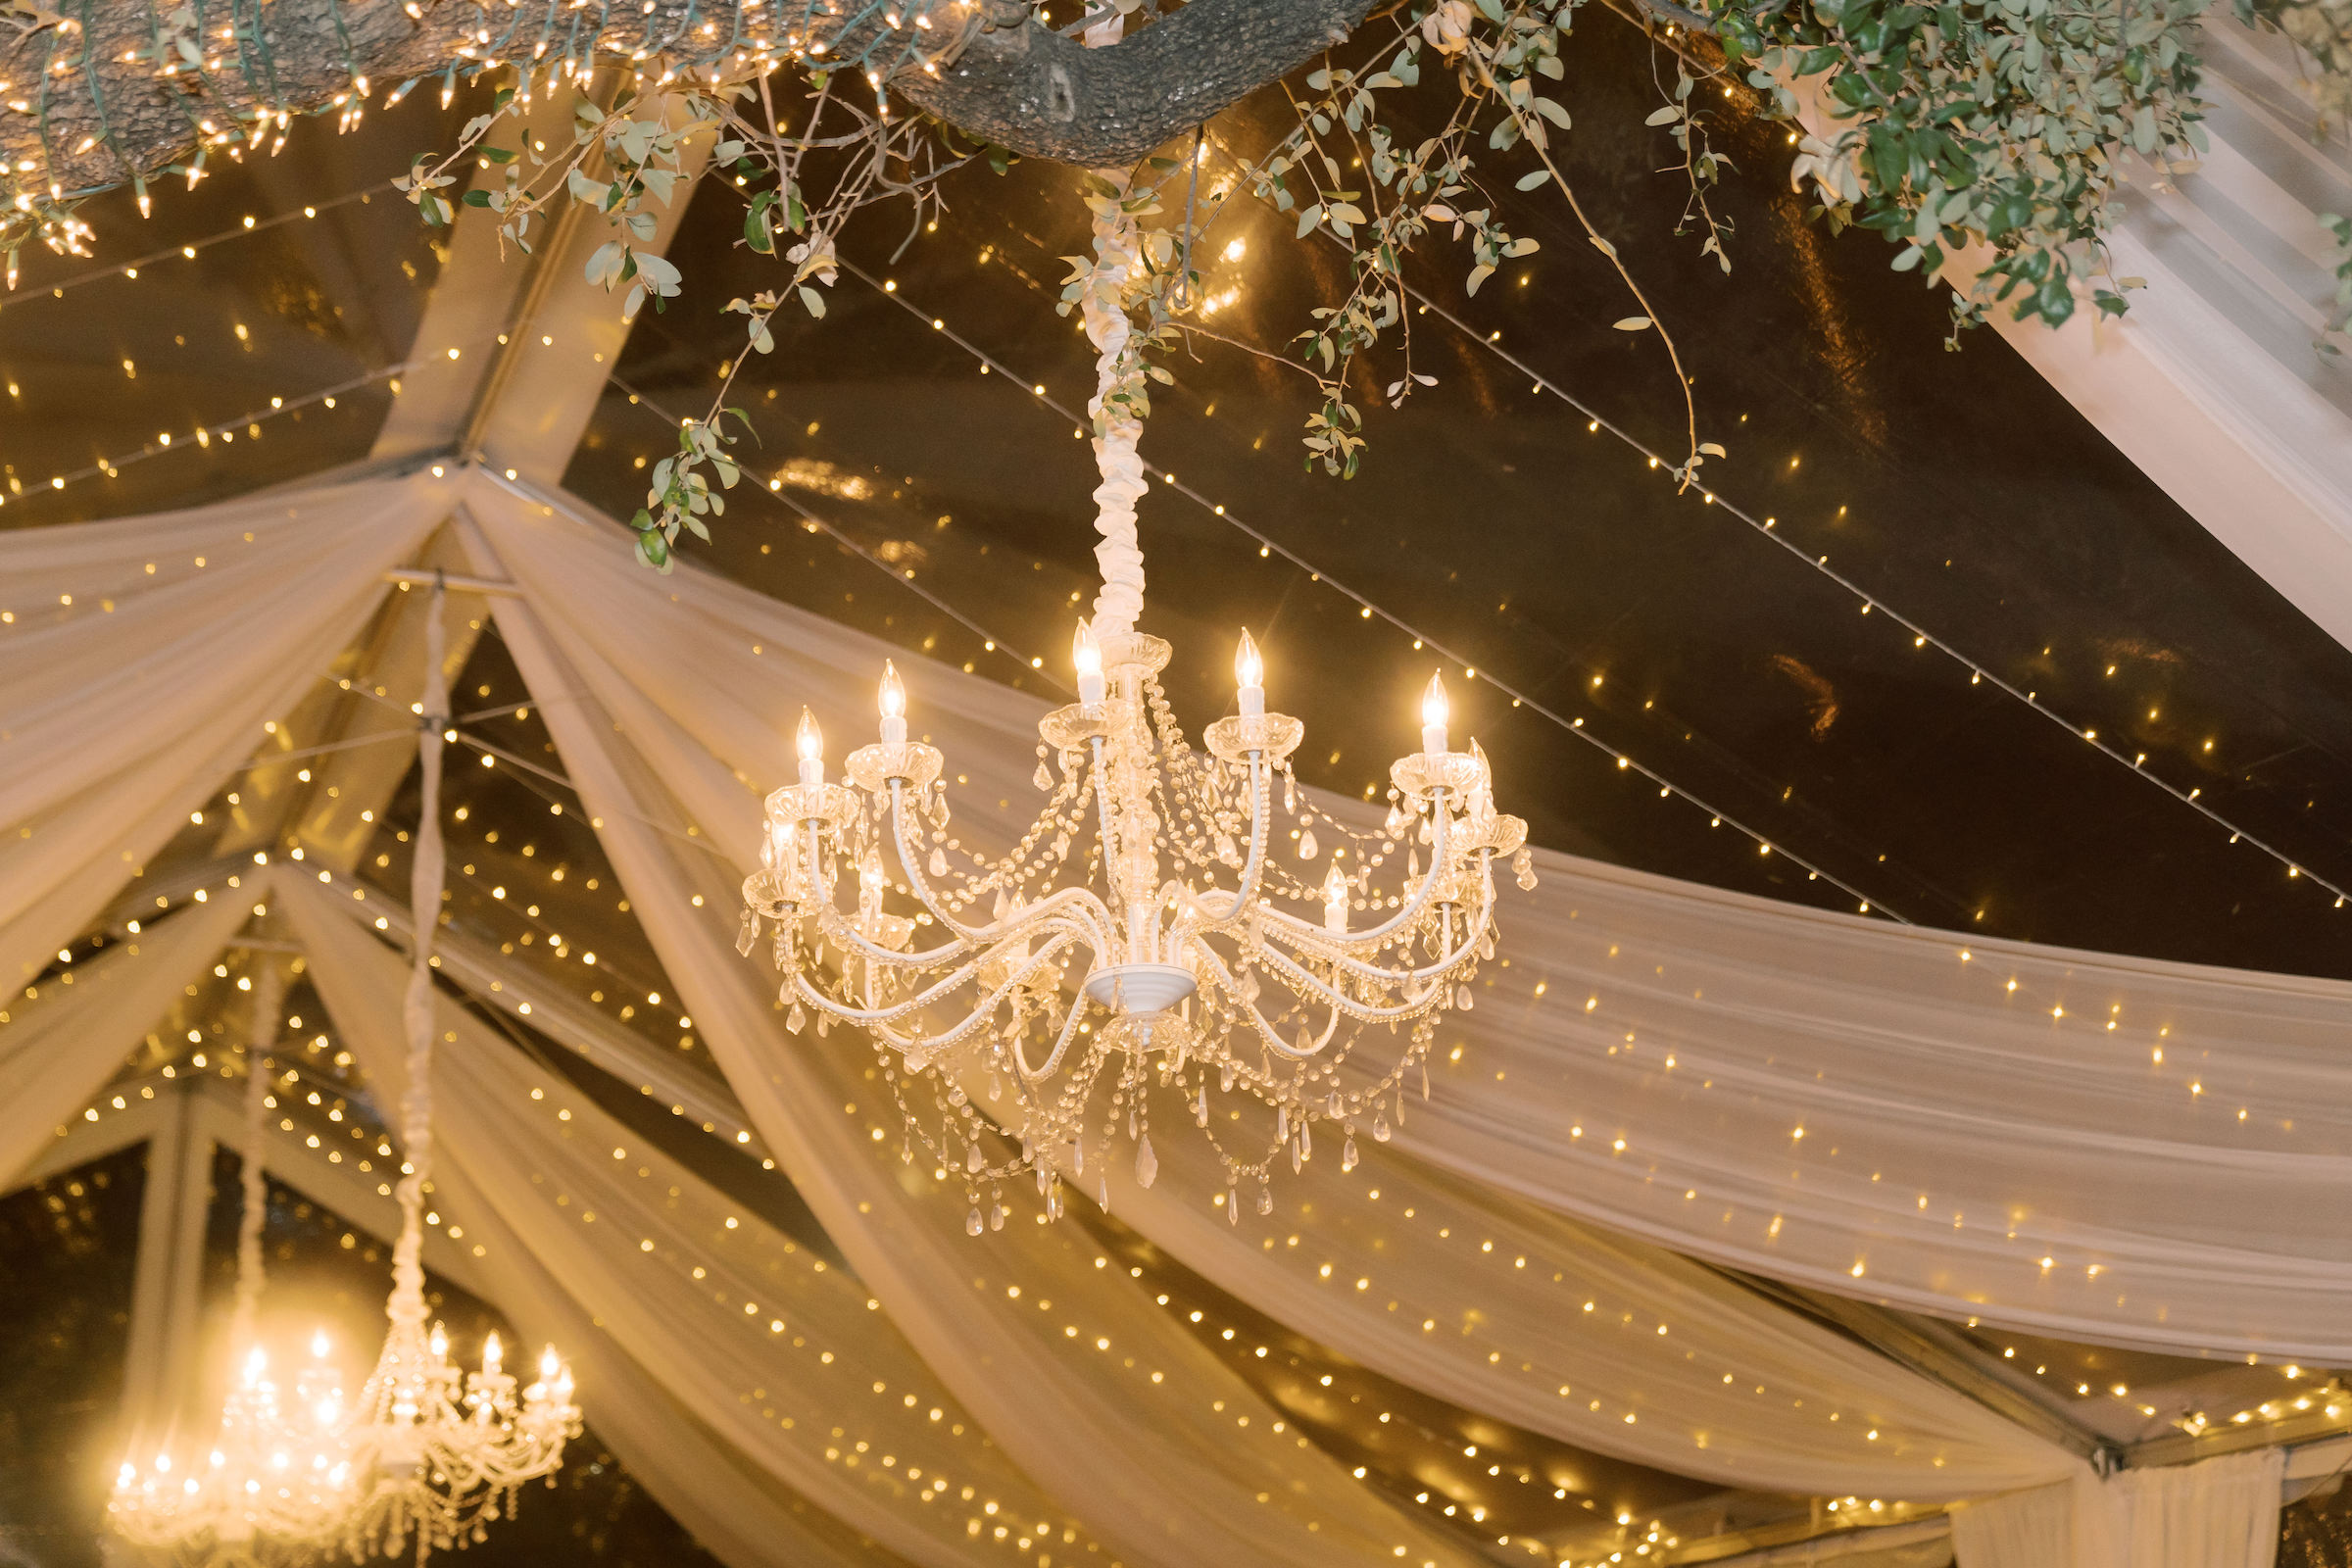 glowing chandelier hung amongst tapestries